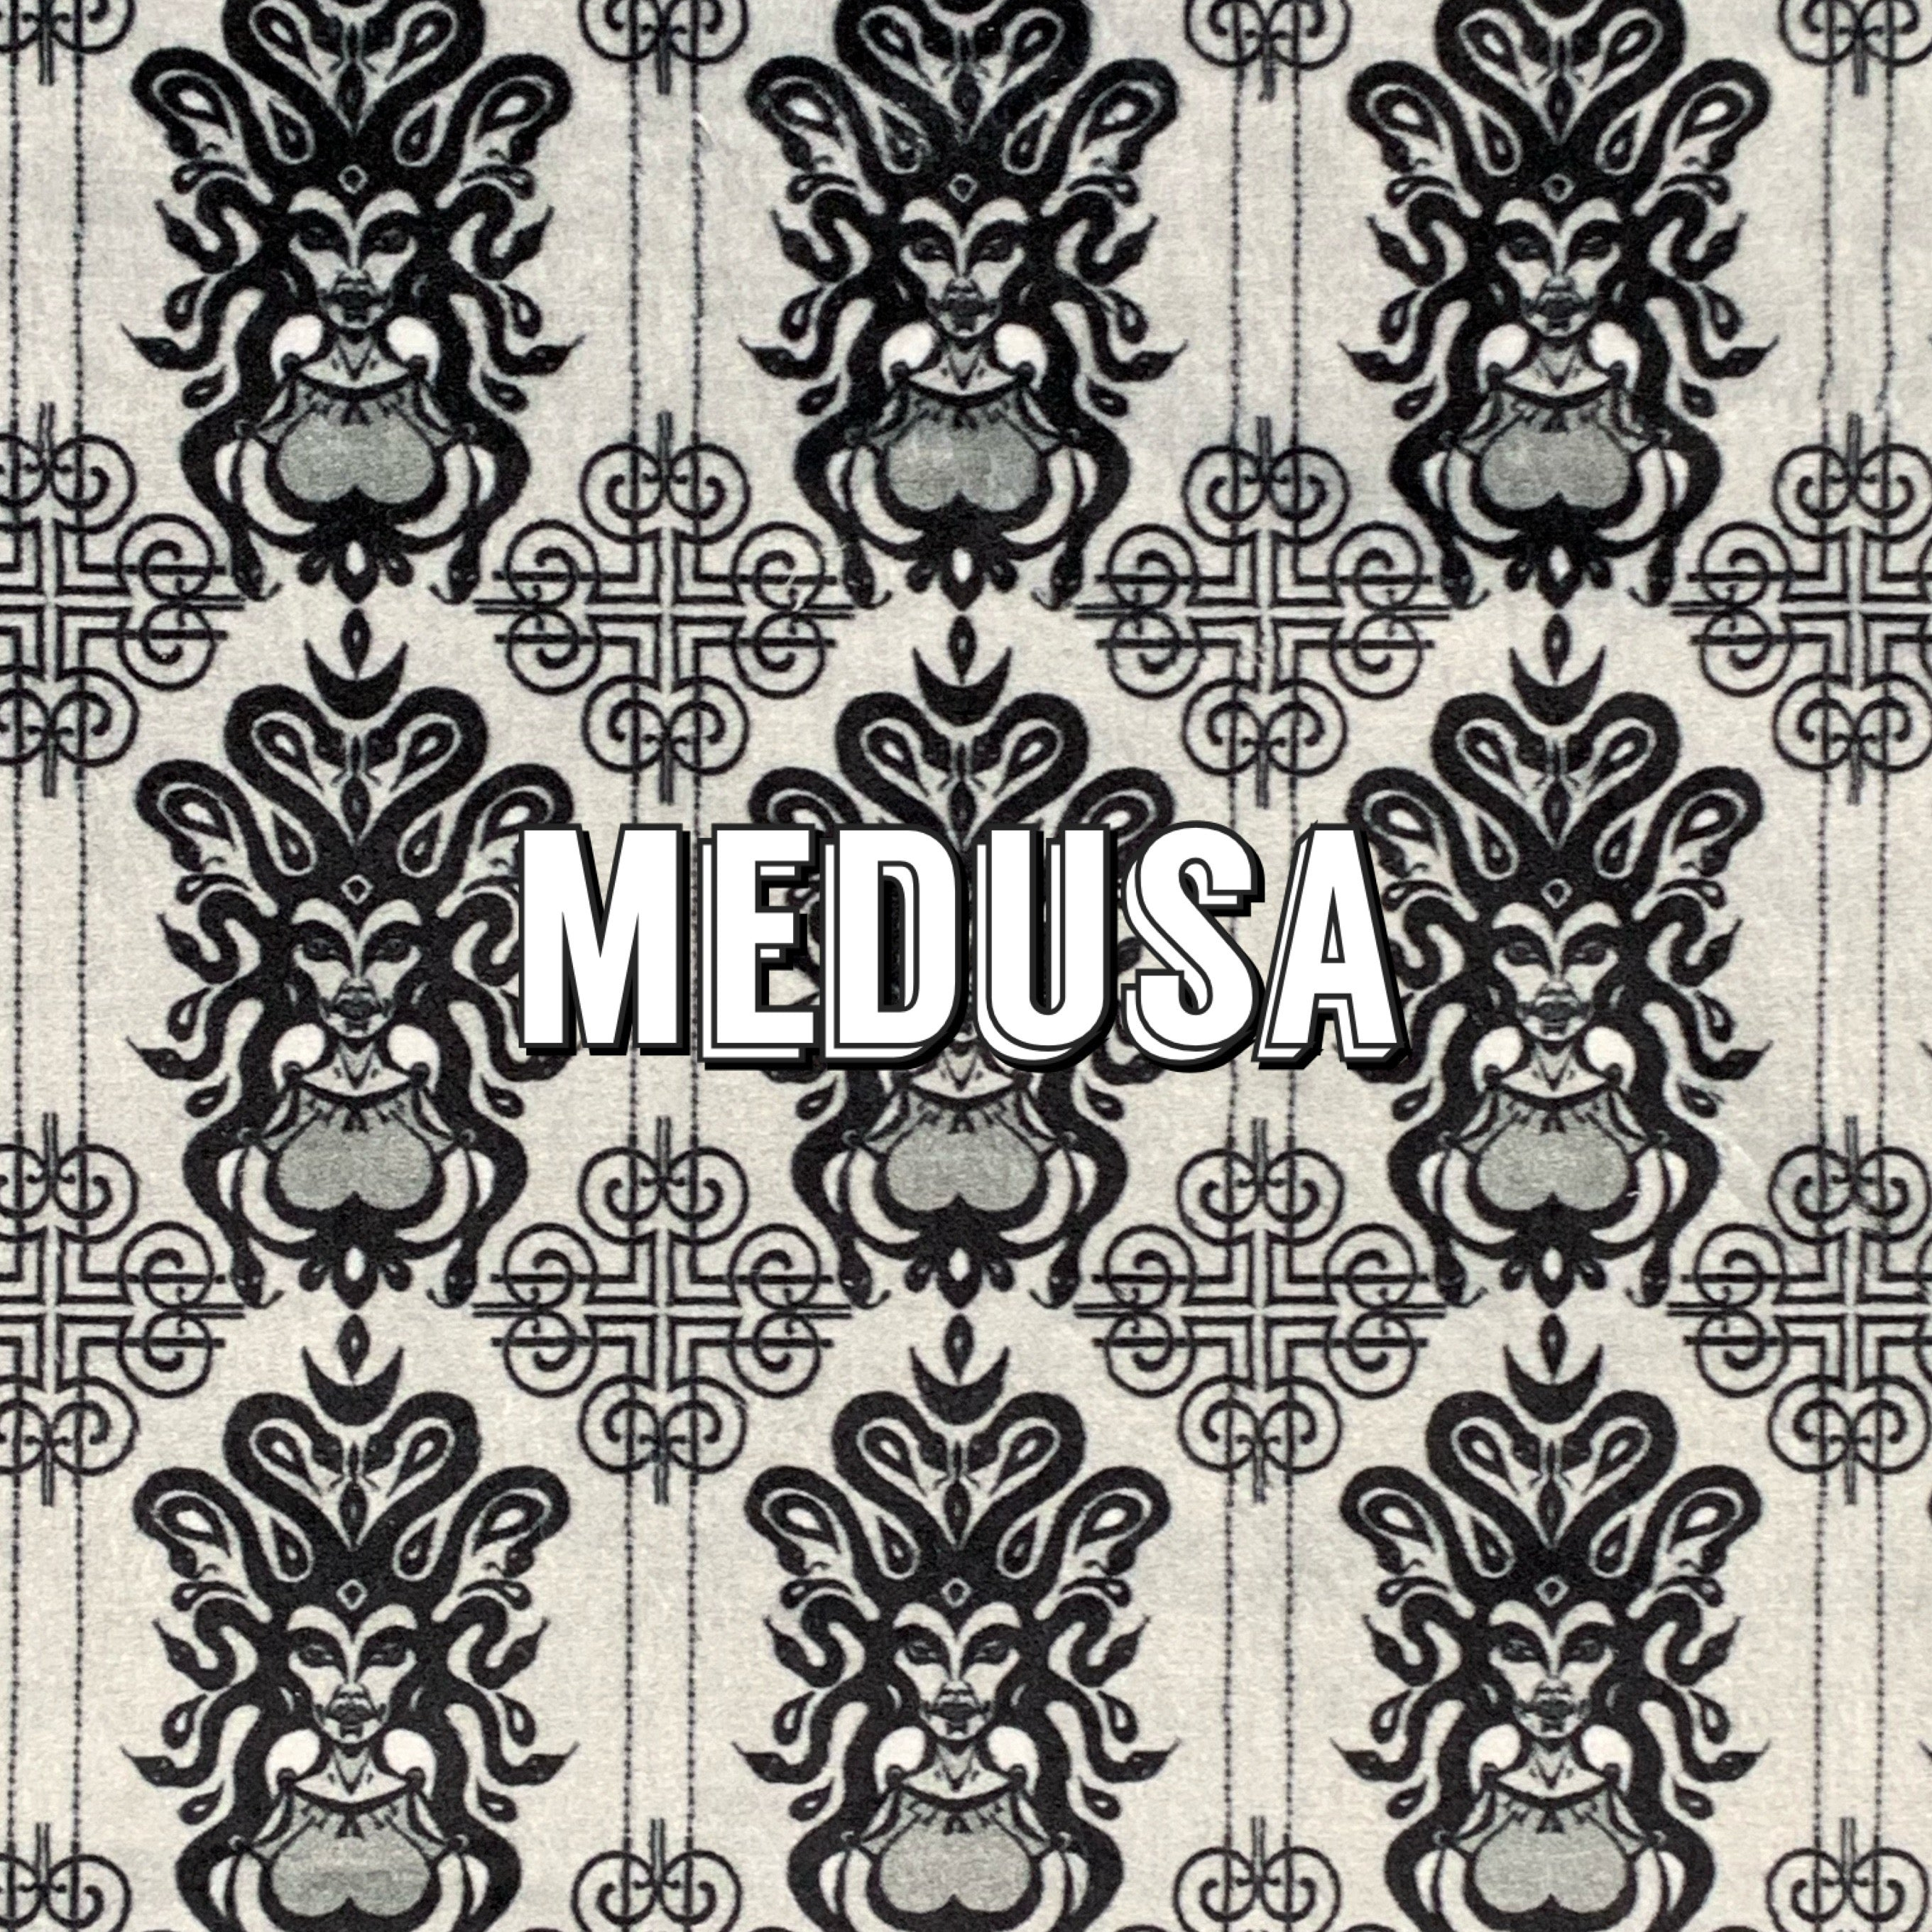 Medusa - Specialty Minky Print - Featuring Black Heart Top Snap!